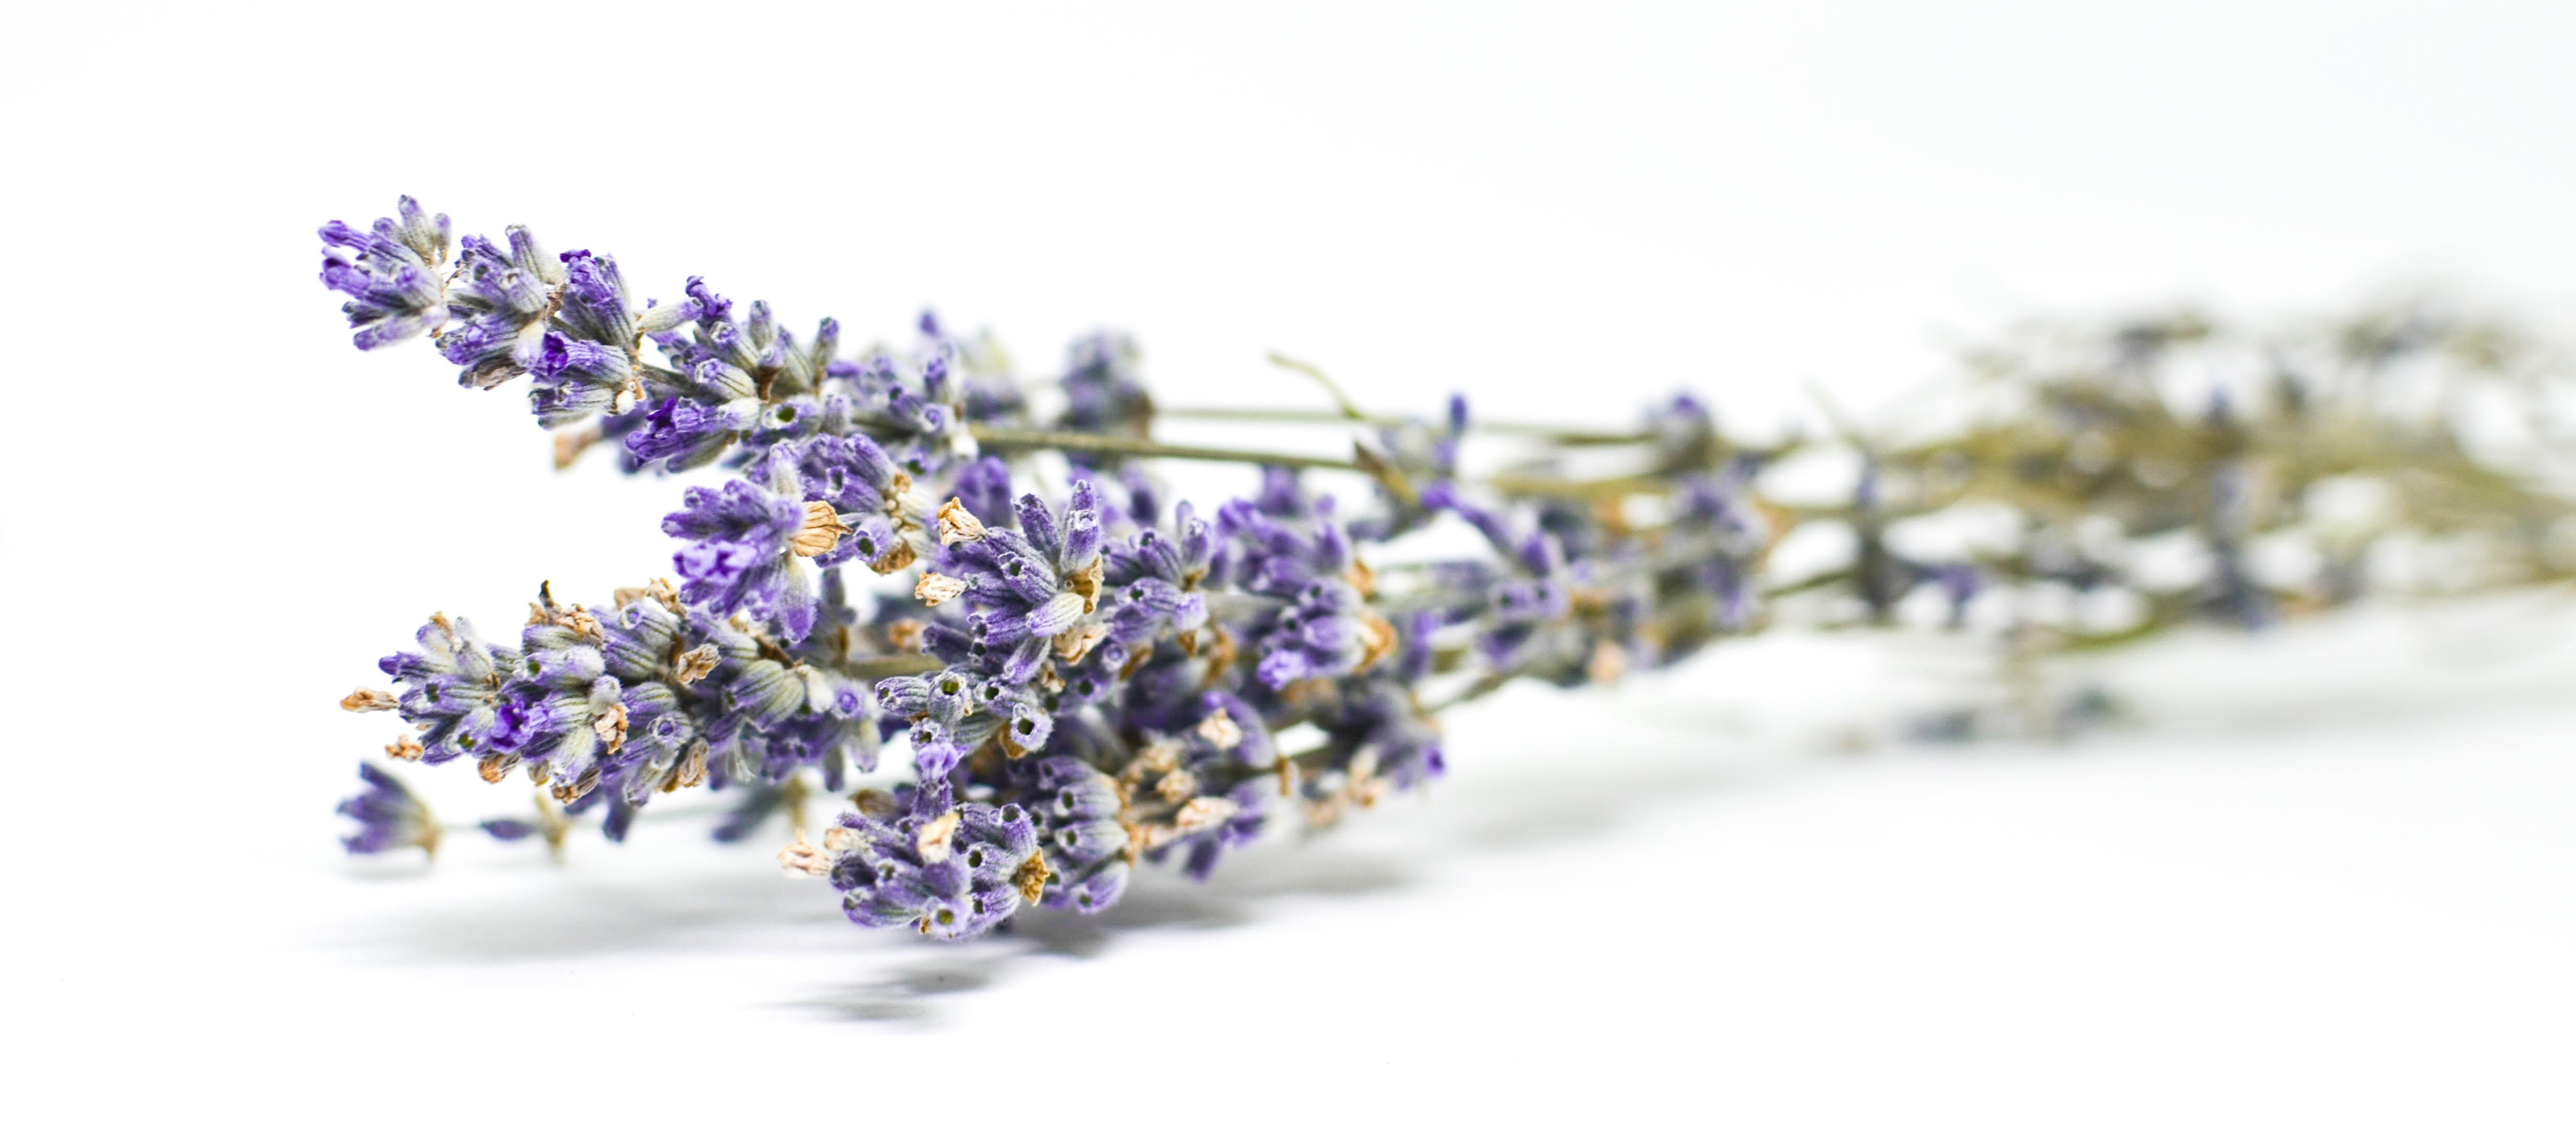 Best quality natural essential oils including Lavandin - (Lavandula x intermedia), Reconstitution Lavandin NNA, Lavandin Oil Super & Standard and other fragrance & perfume oils at the most discount rates by BMV Fragrances in UP, India.